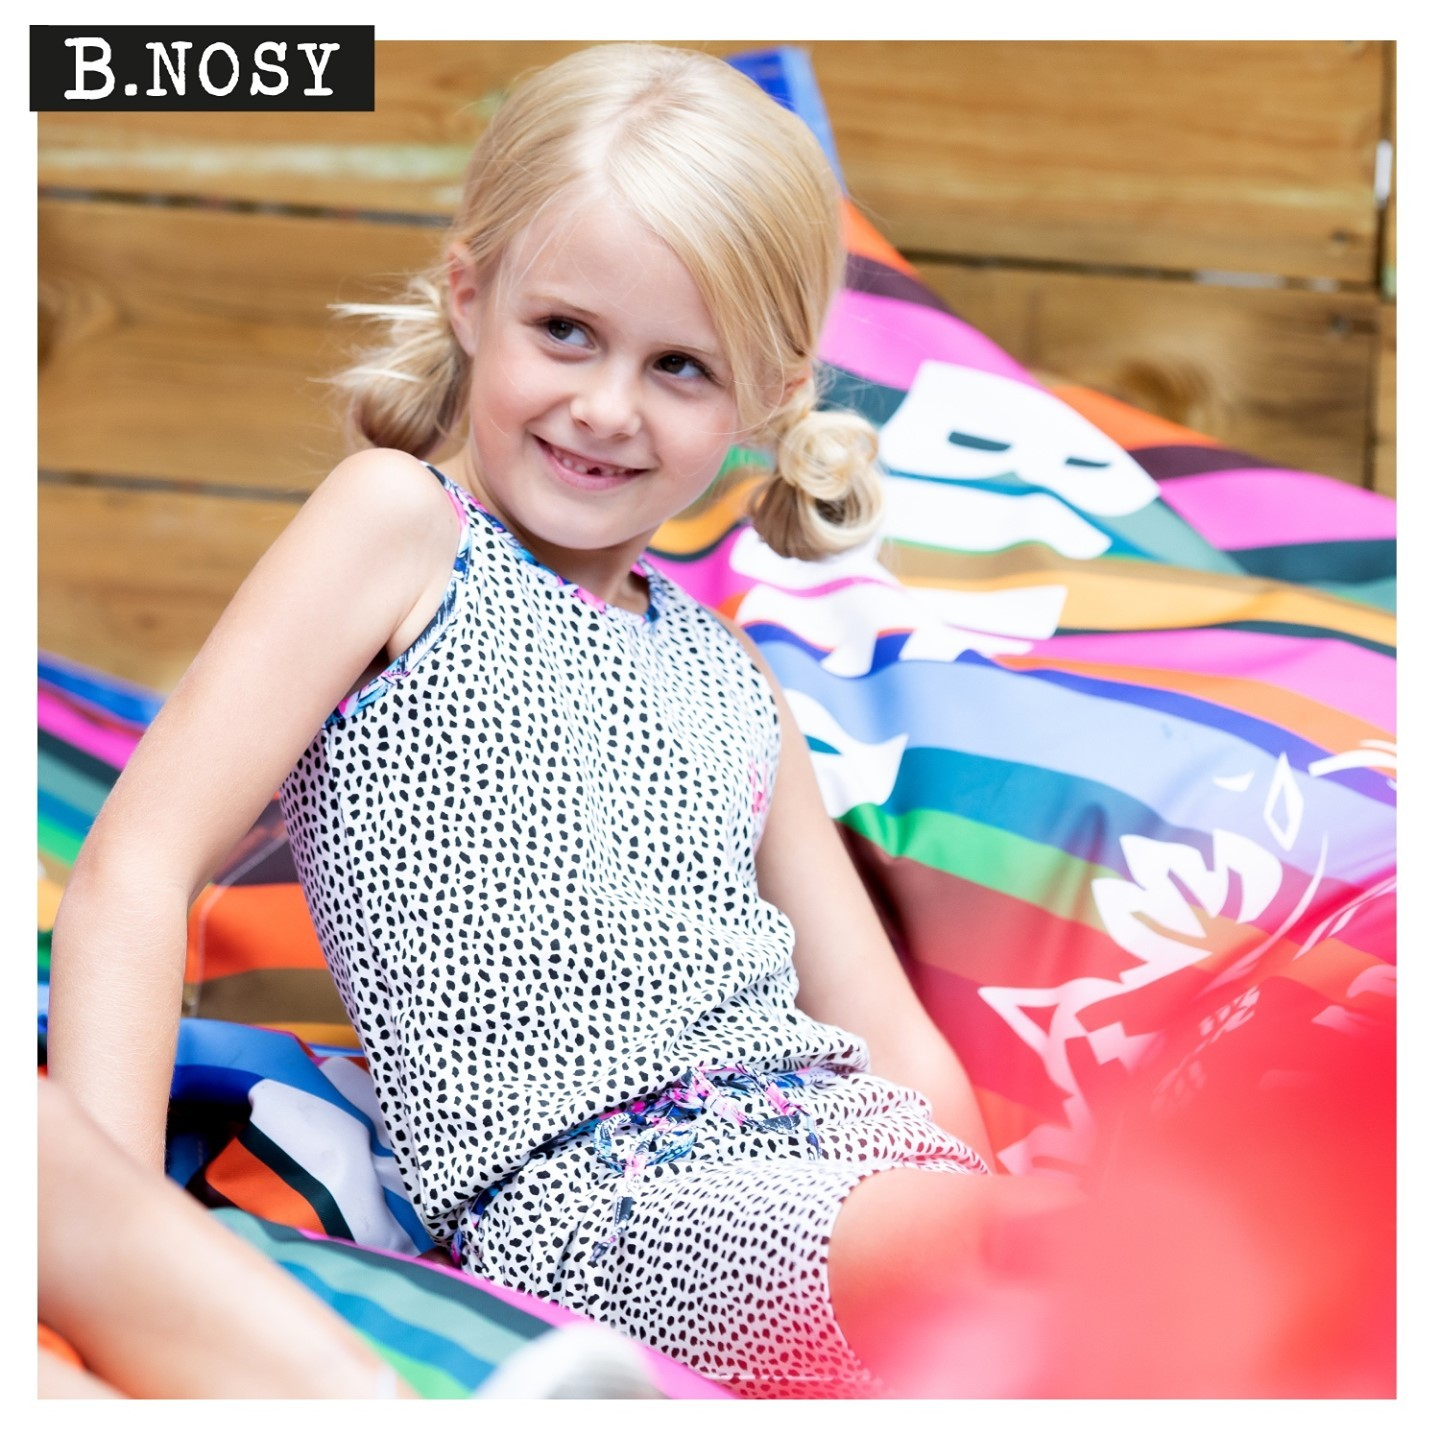 JUST CHILLING! ⁠ #bnosygirls #newcollection #dotsdress #loveit #justsitandrelaxed #kidswear #summercollection #inspiration #tuesdaymorning